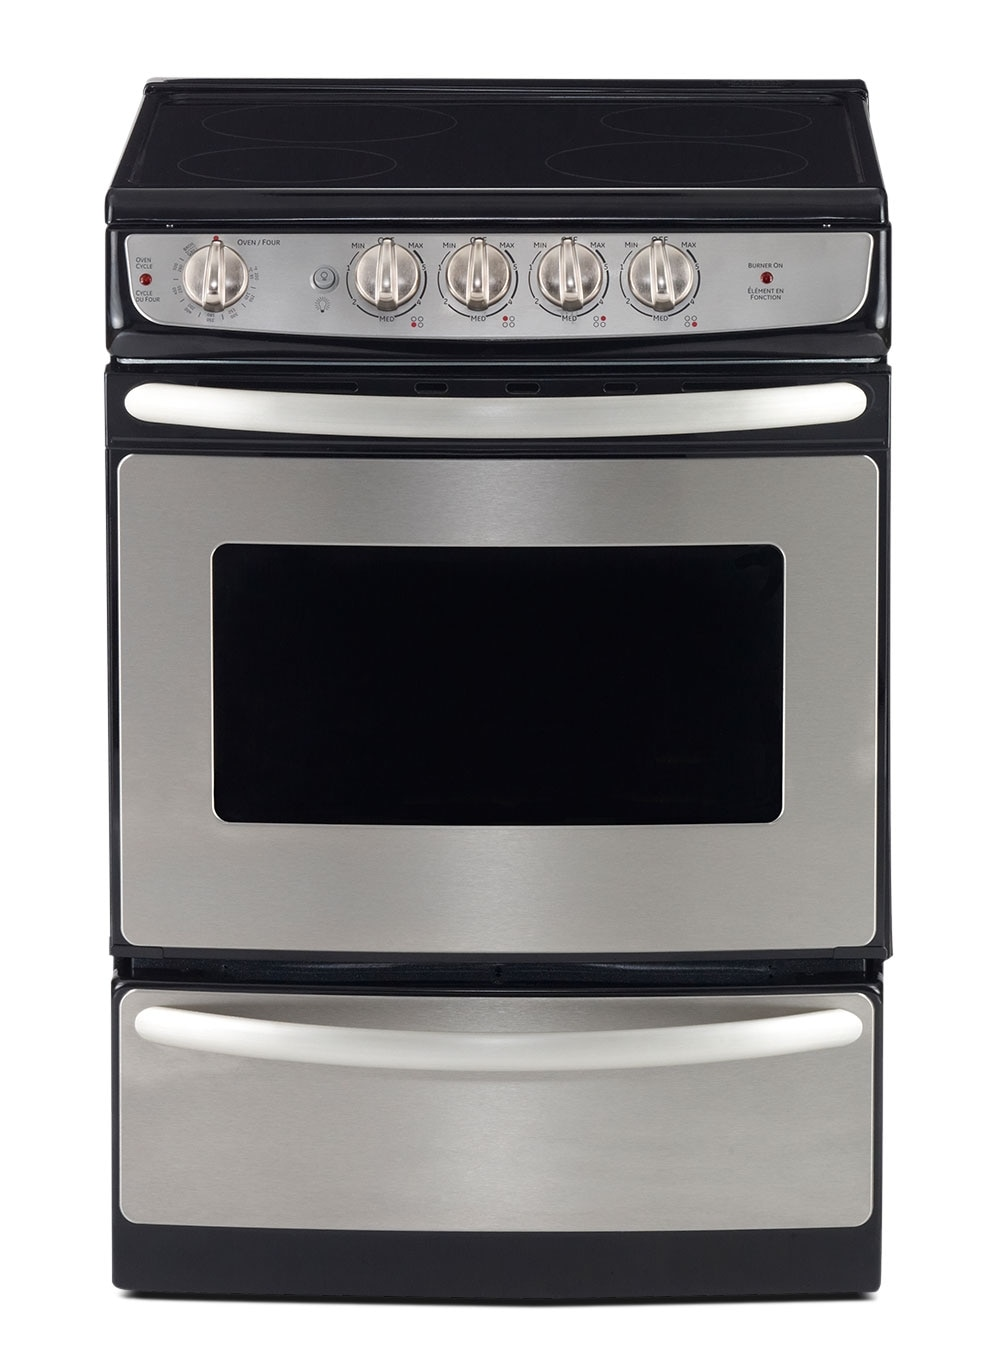 Cooking Products - GE Stainless Steel Slide-In Electric Range (3.0 Cu. Ft.) - JCAS445SVSS